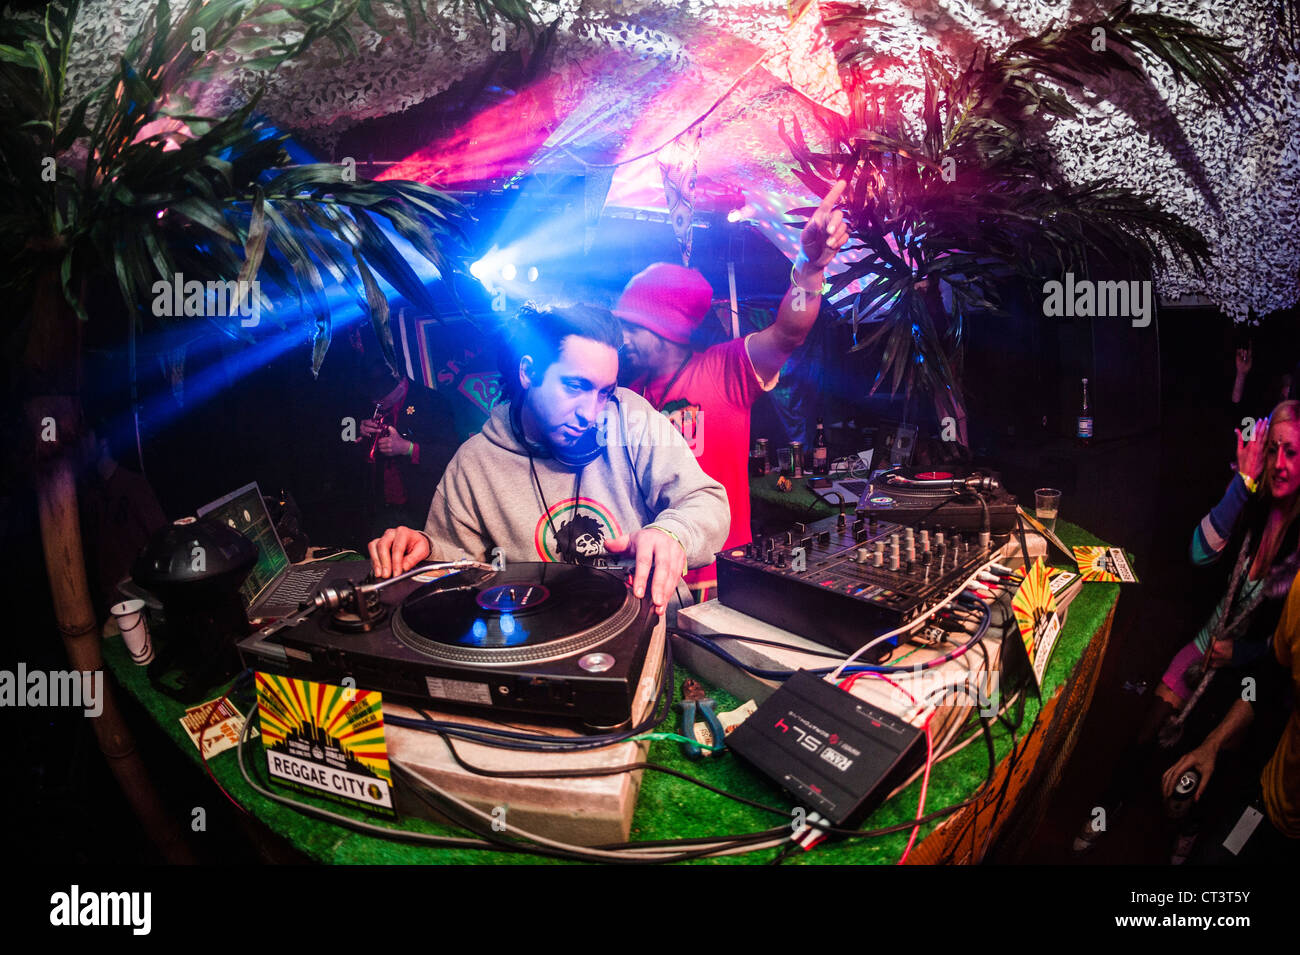 A man DJ'ing at The Rare One music dance party event festival, Wales UK - Stock Image